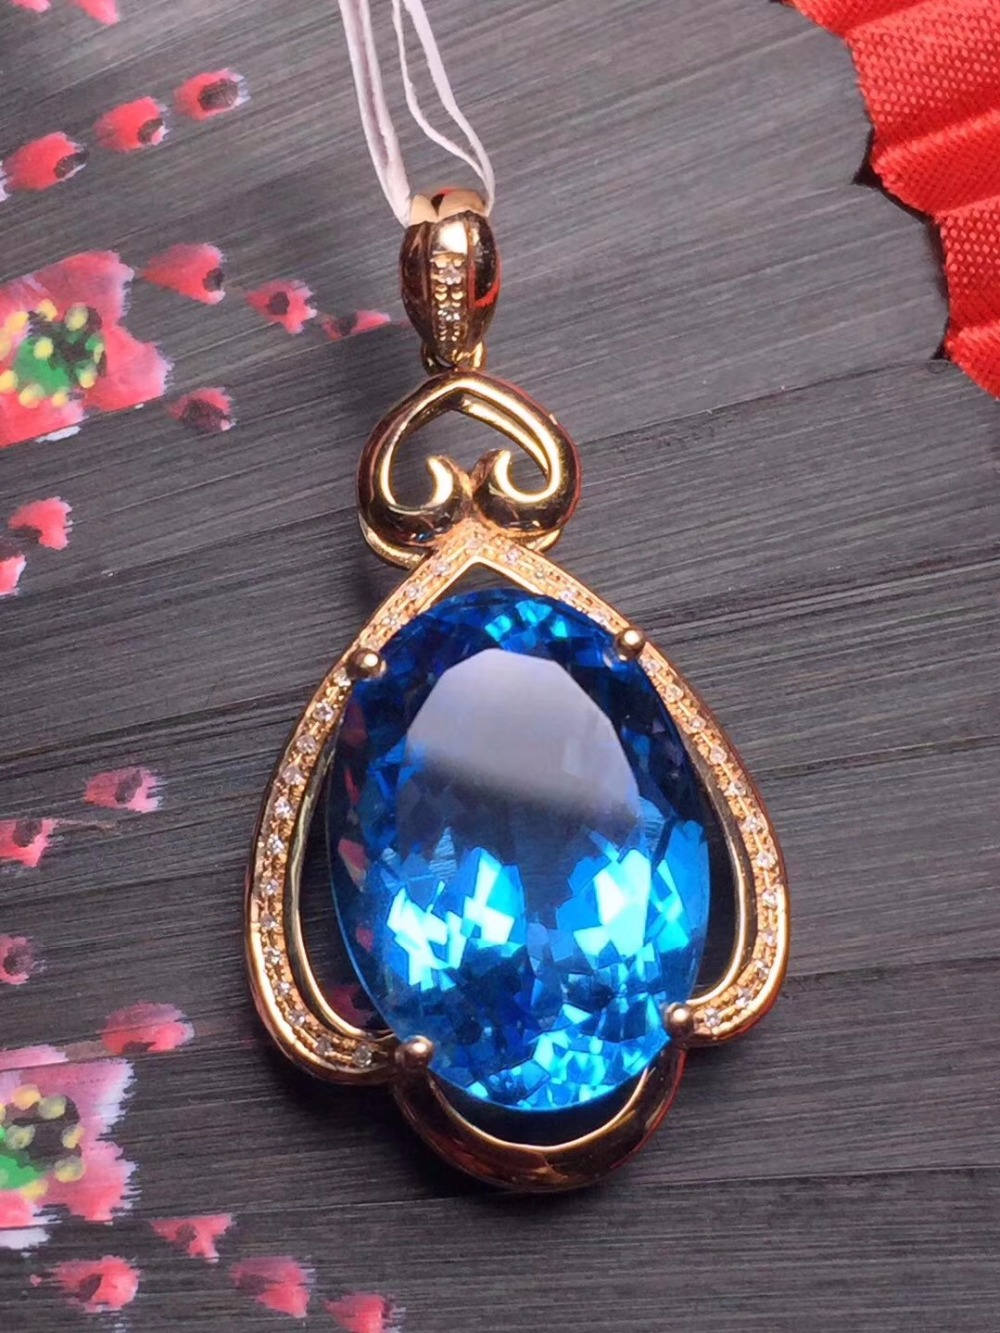 Fine Jewelry Customized Collection Real 18K White Gold 100% Natural Blue Topaz Gemstone Pendant Necklace For Women FIne pendants